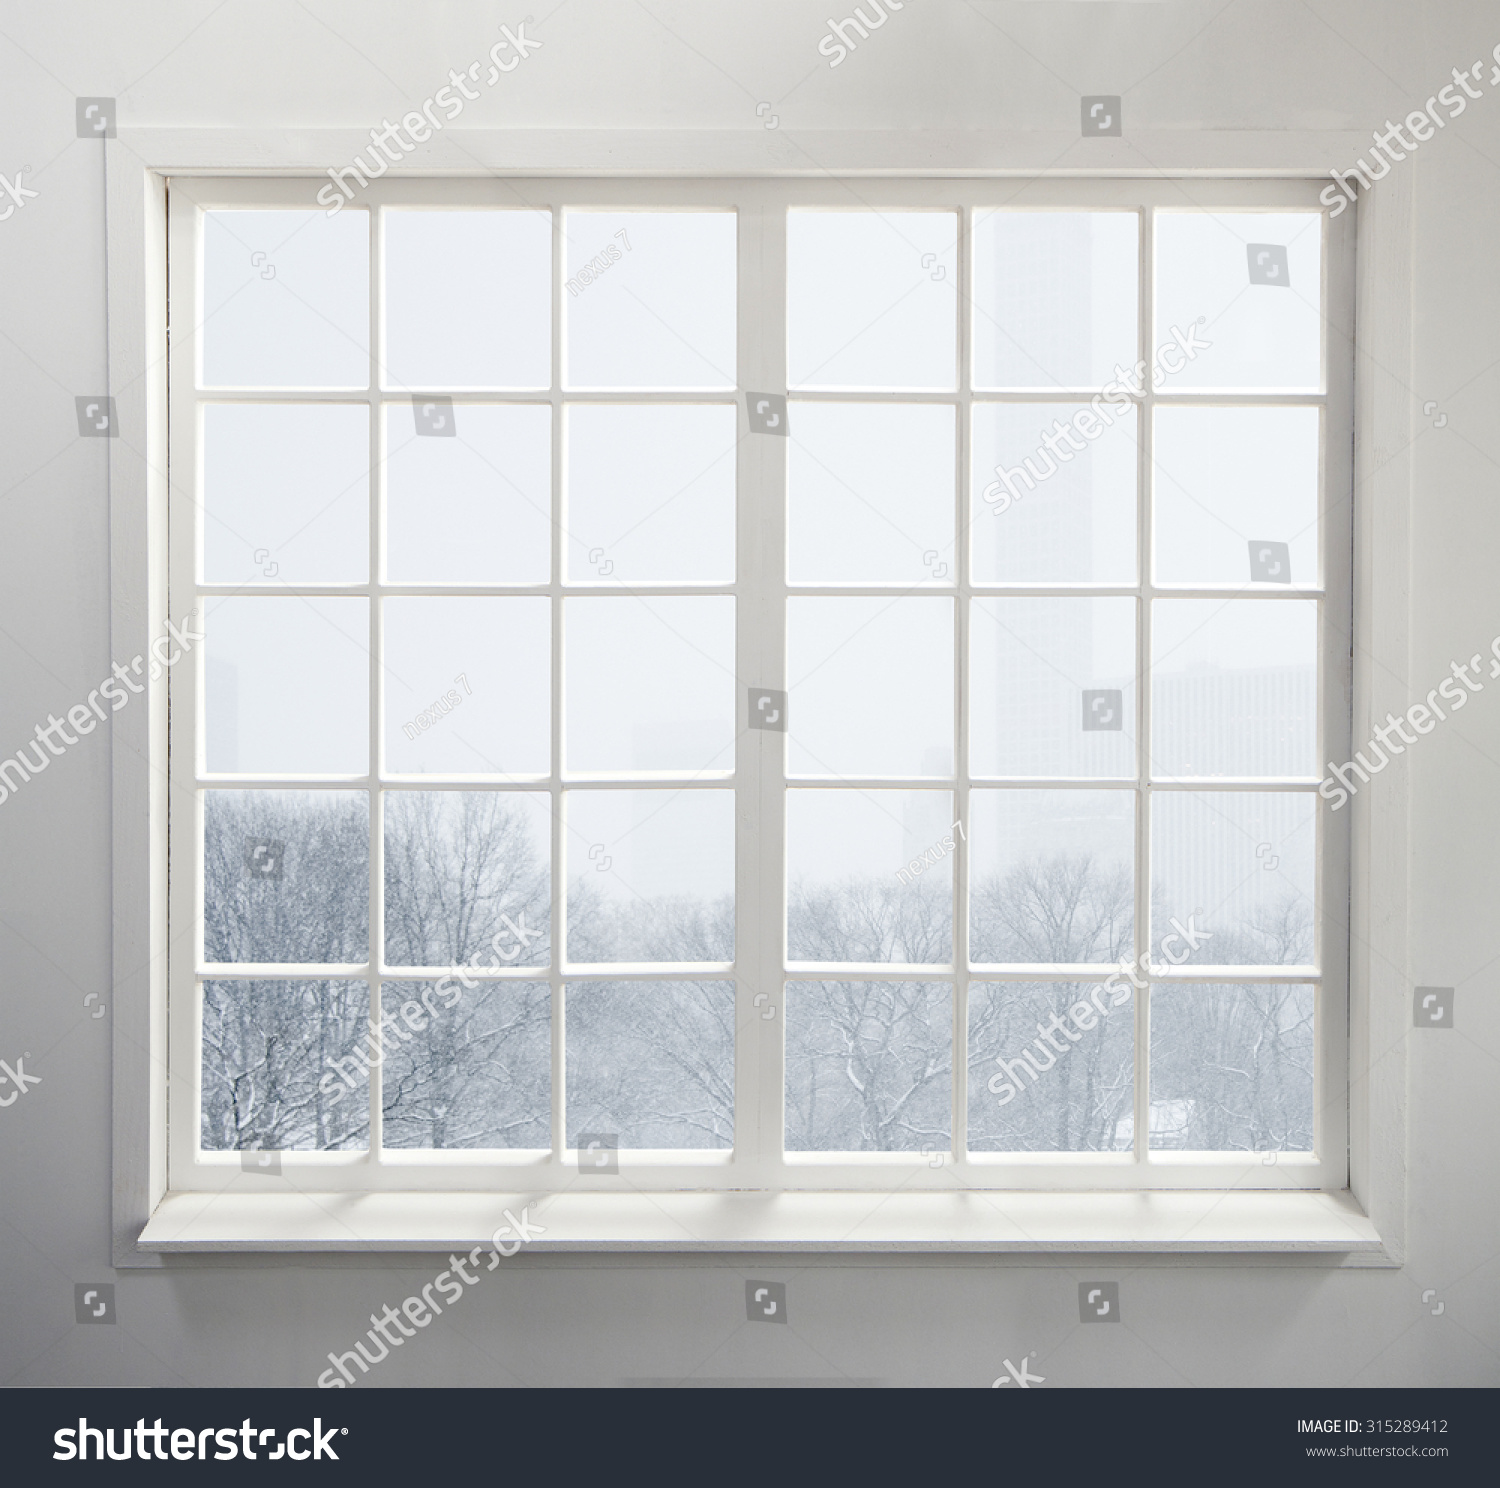 Modern residential window snow trees stock photo 315289412 for Residential window design